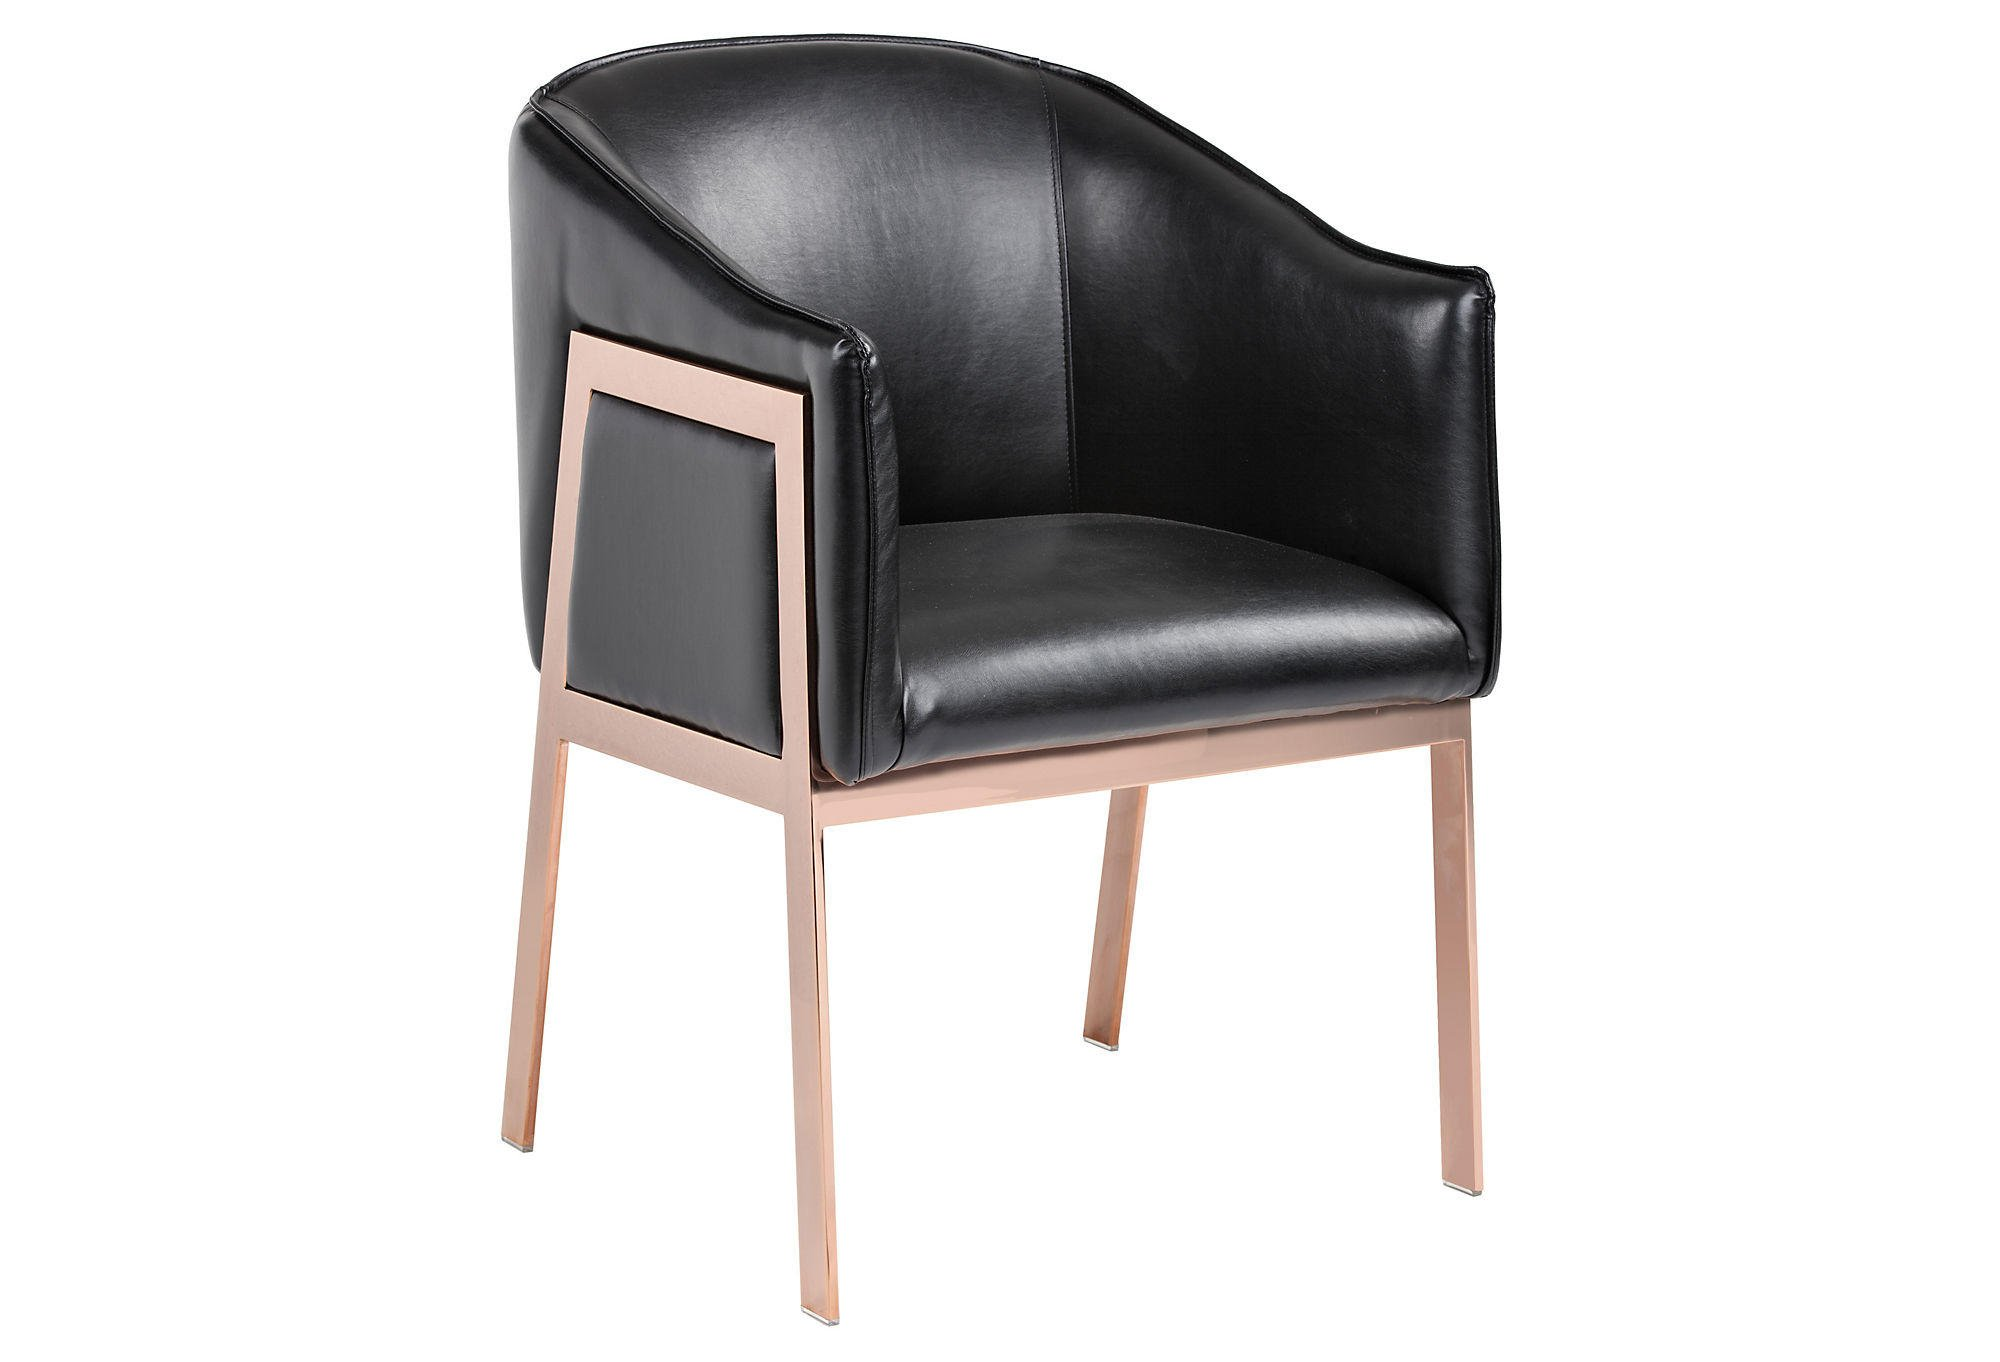 Rose Gold Accent Chair Black Leather From One Kings Lane